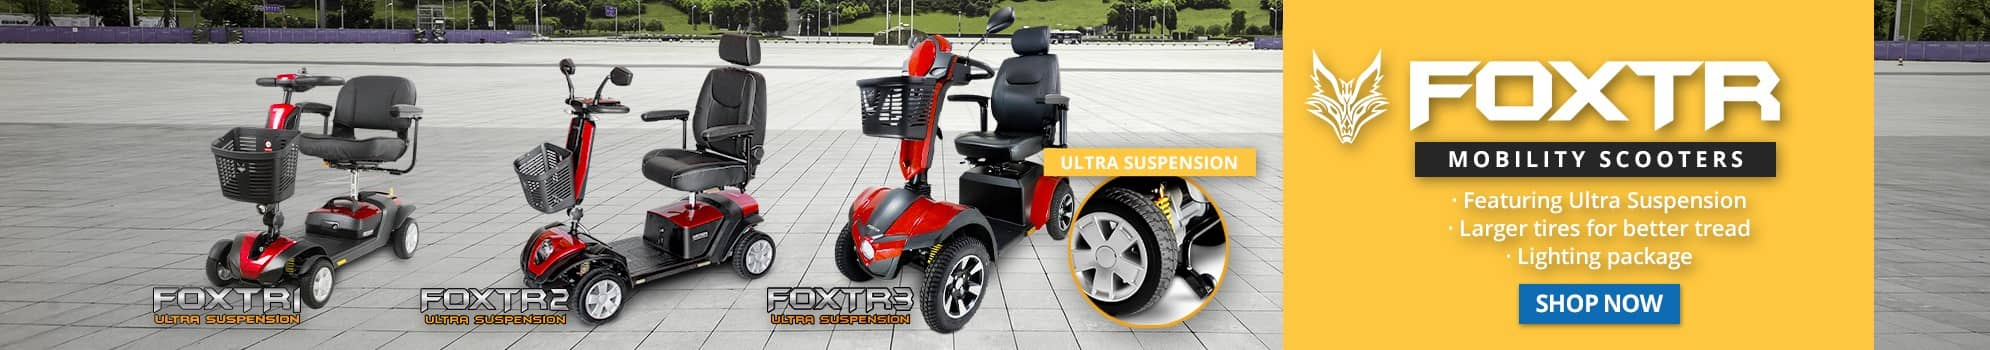 FOXTR Mobility Scooters Banner